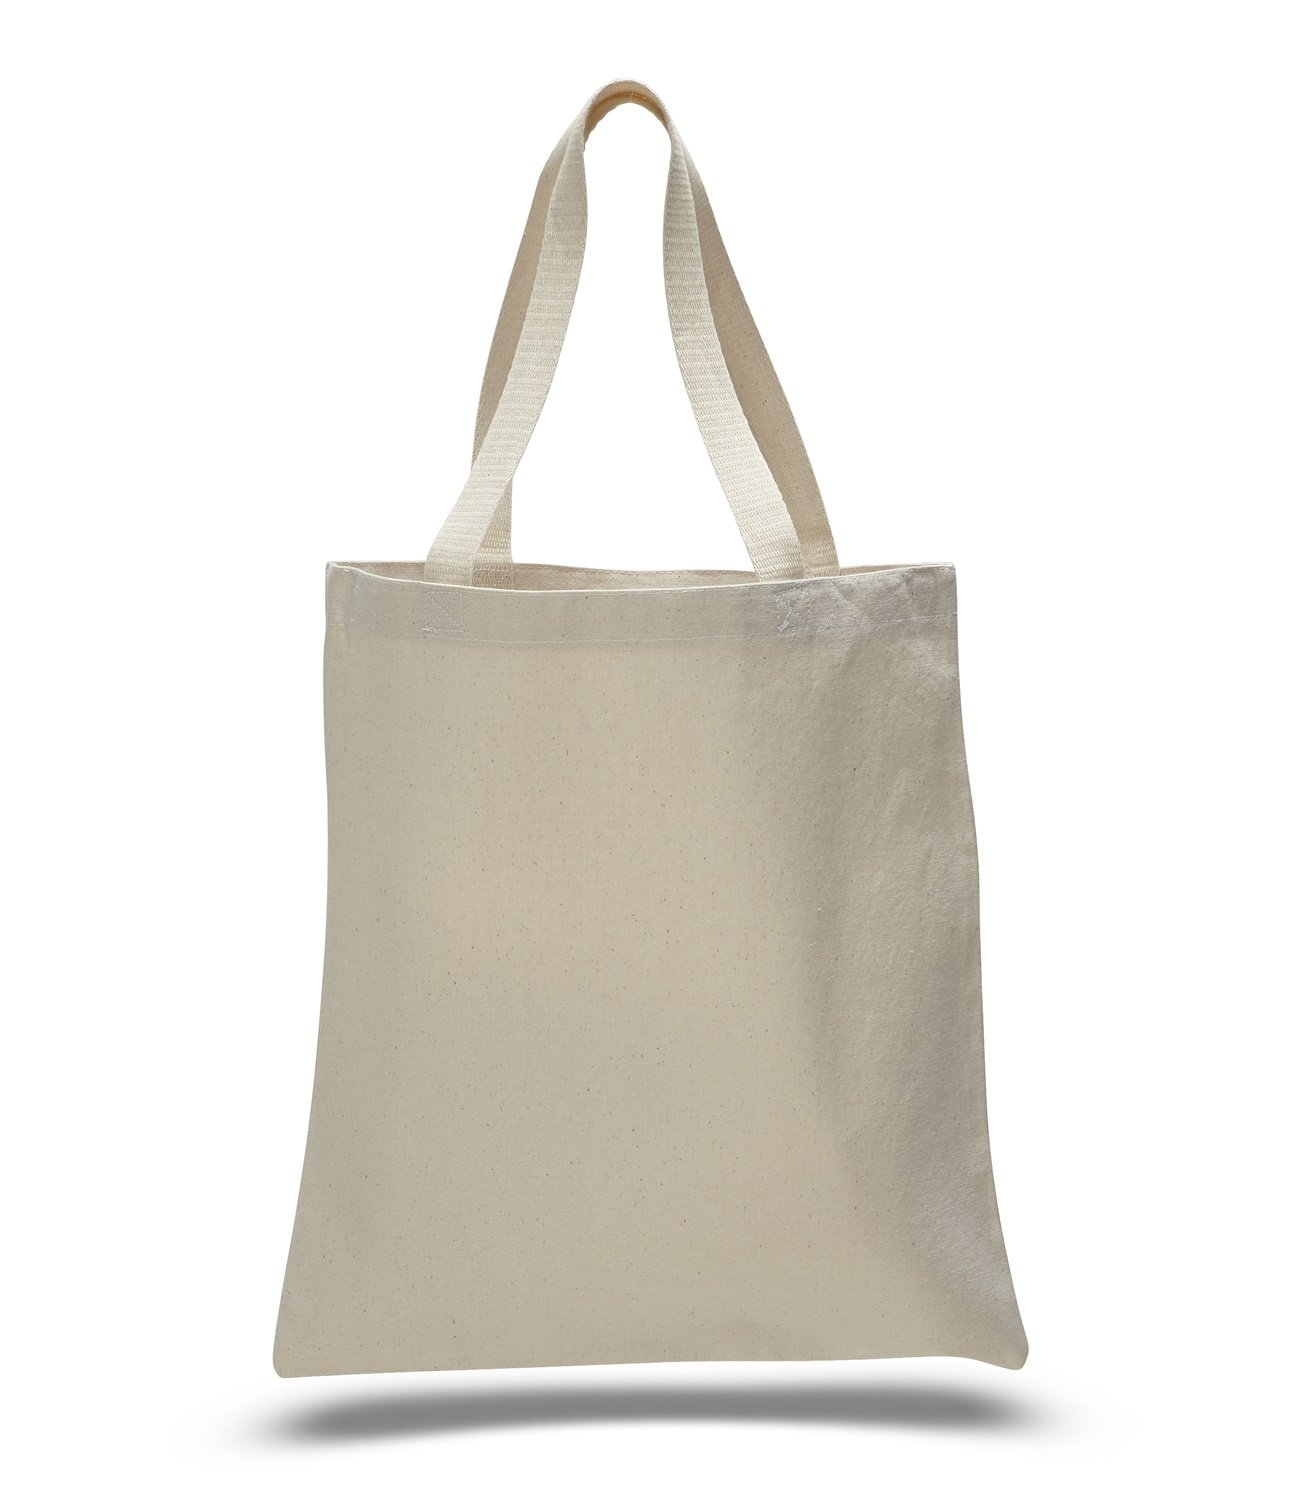 (60 Pack) 5 Dozen - Promotional Canvas Tote Bags by ToteBagFactory by ToteBagFactory